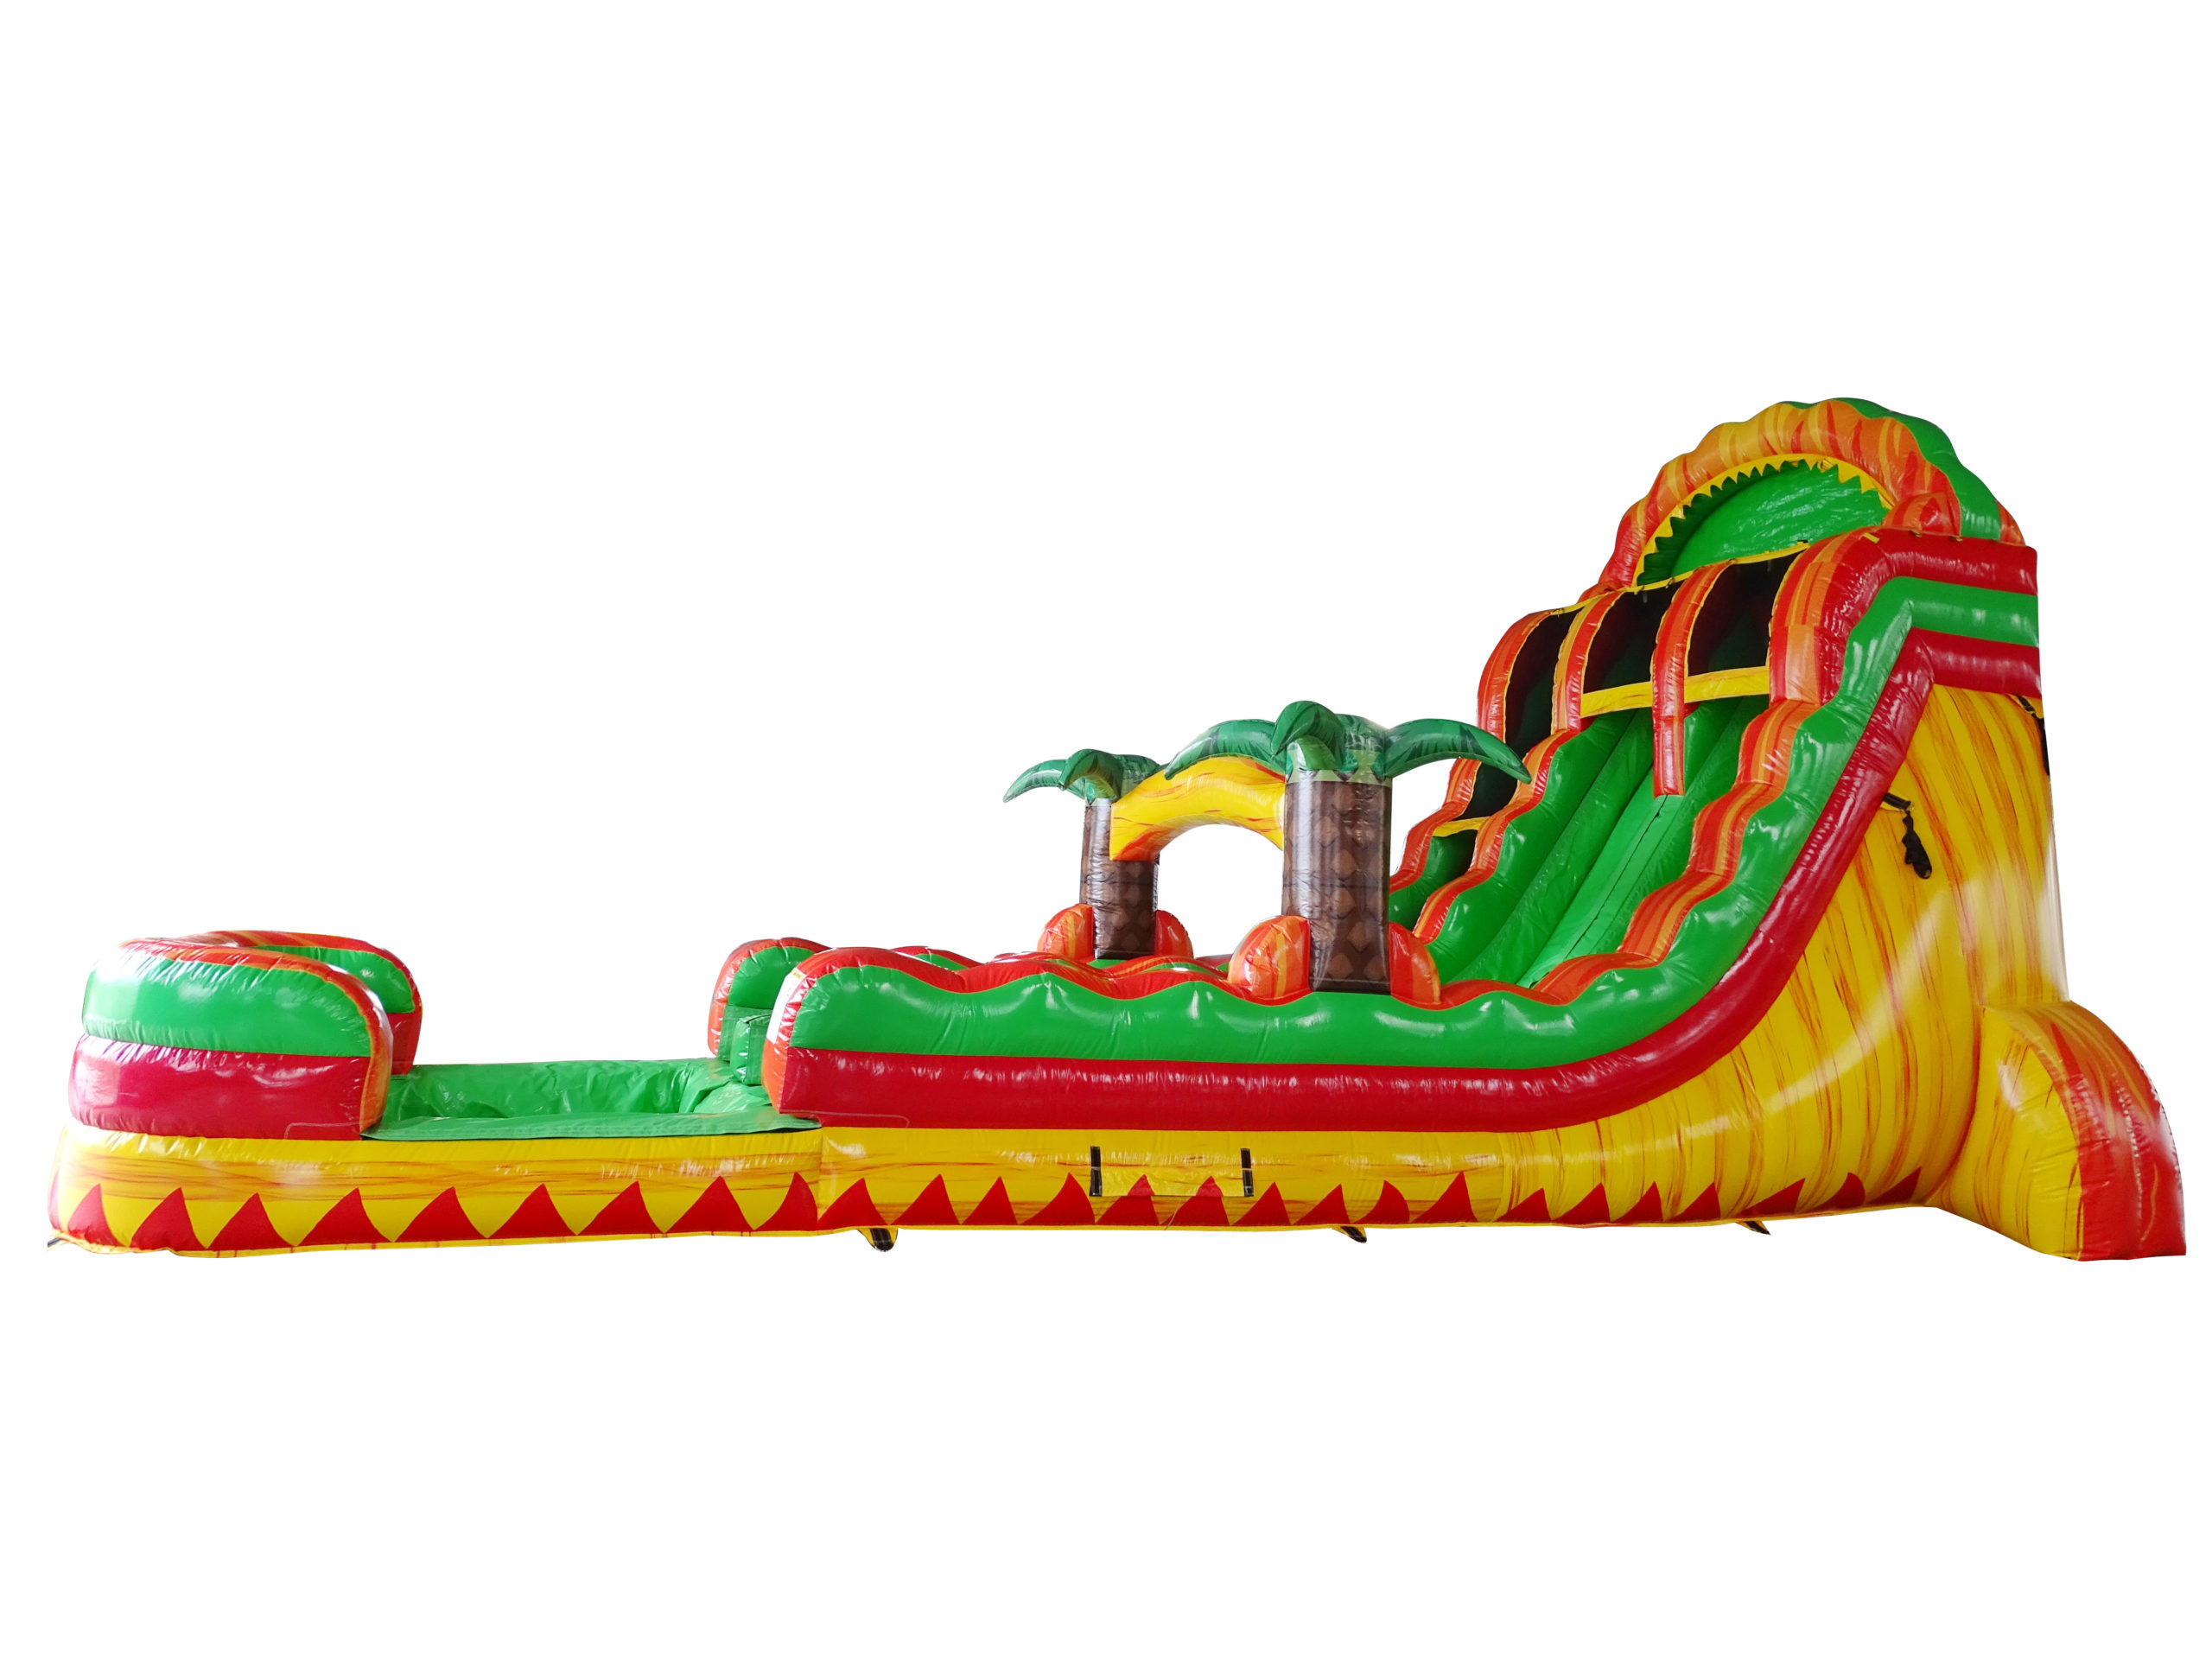 19ft-Inferno-Green-2-2-scaled